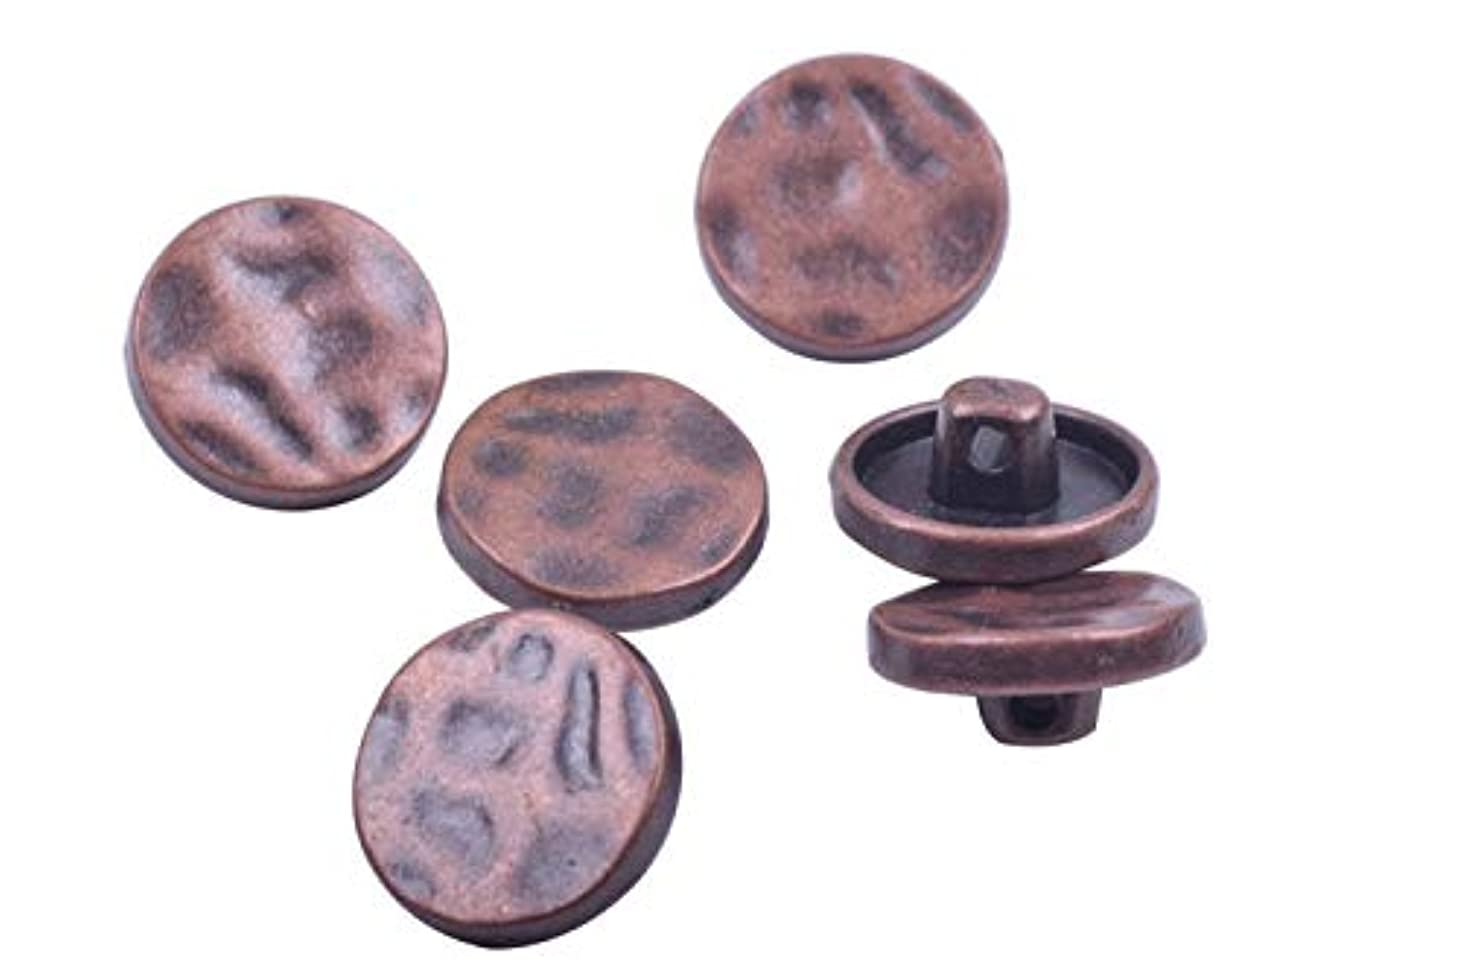 KONMAY 30pcs Antique Copper Metal Buttons with Shank for Bracelet Wrapping, Sewing,Crafting